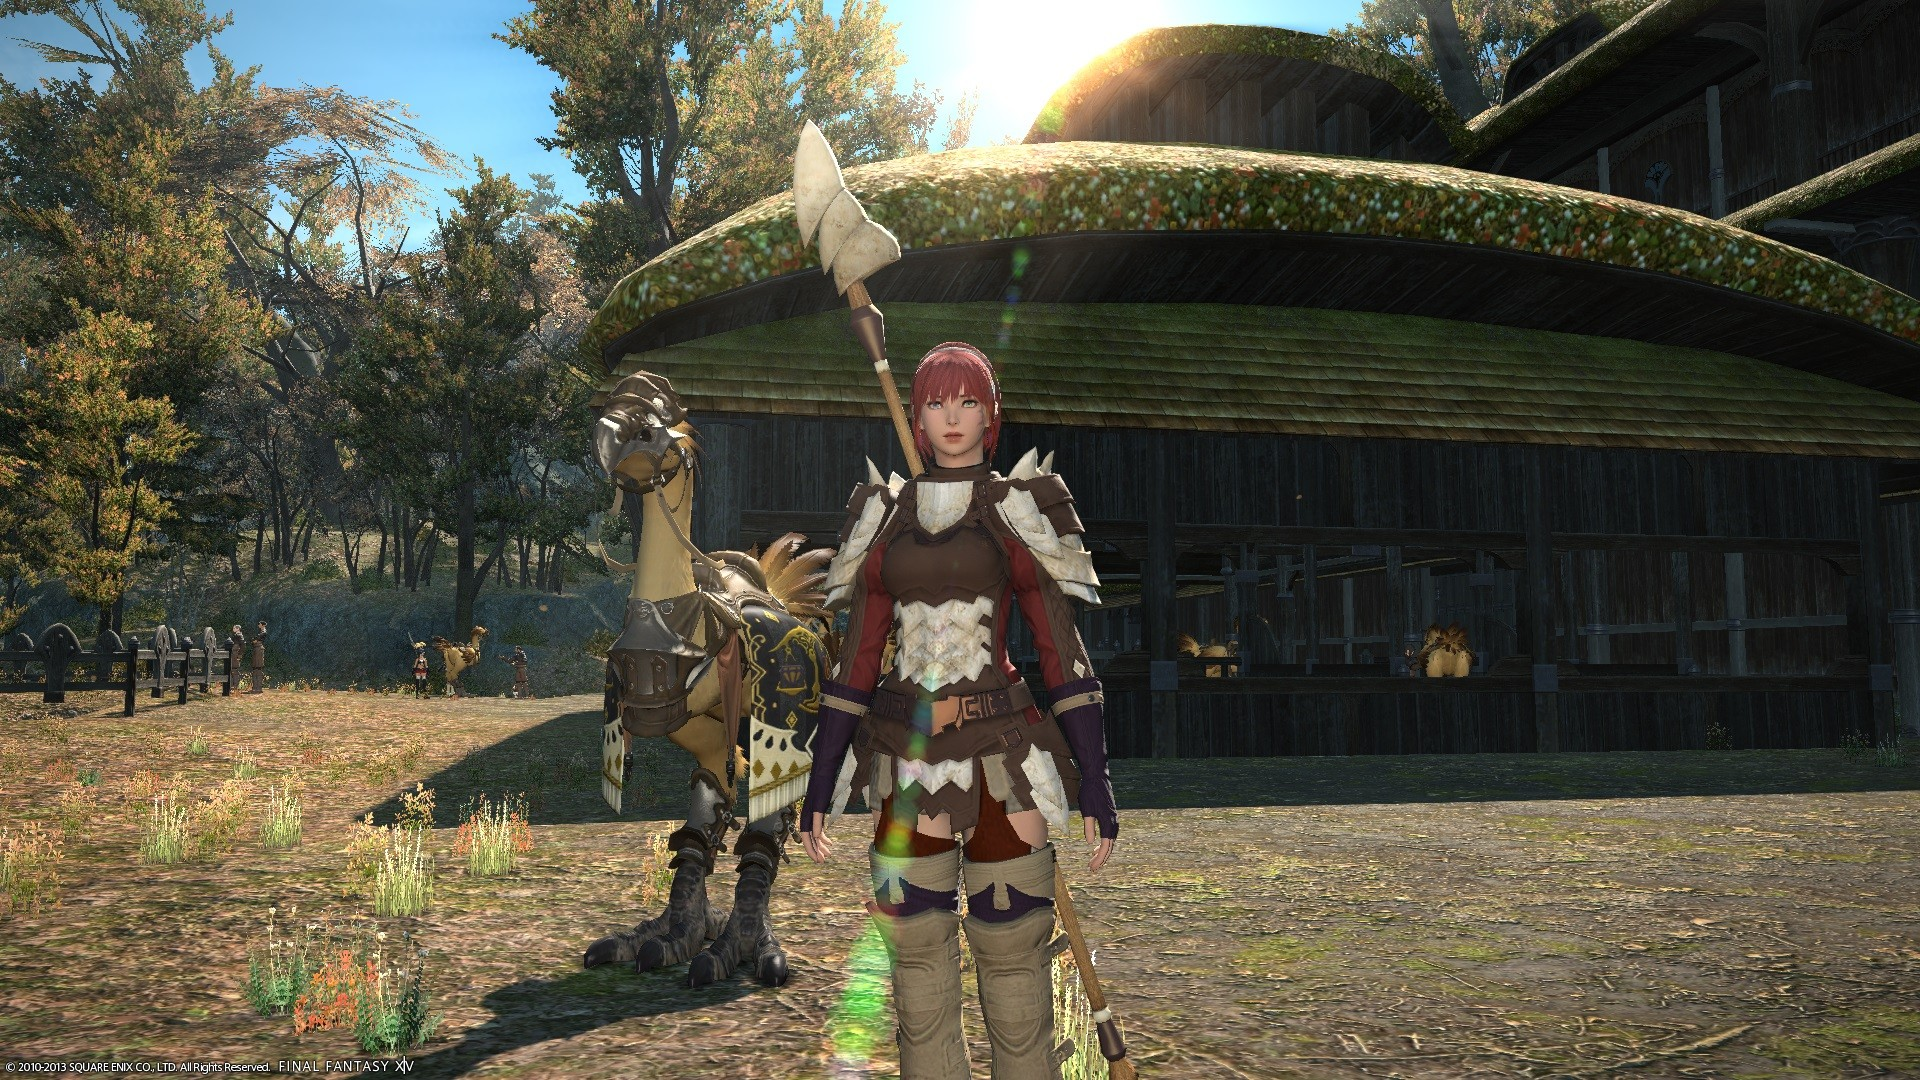 Final Fantasy XIV: A Realm Reborn - Lancer With Chocobo Companion